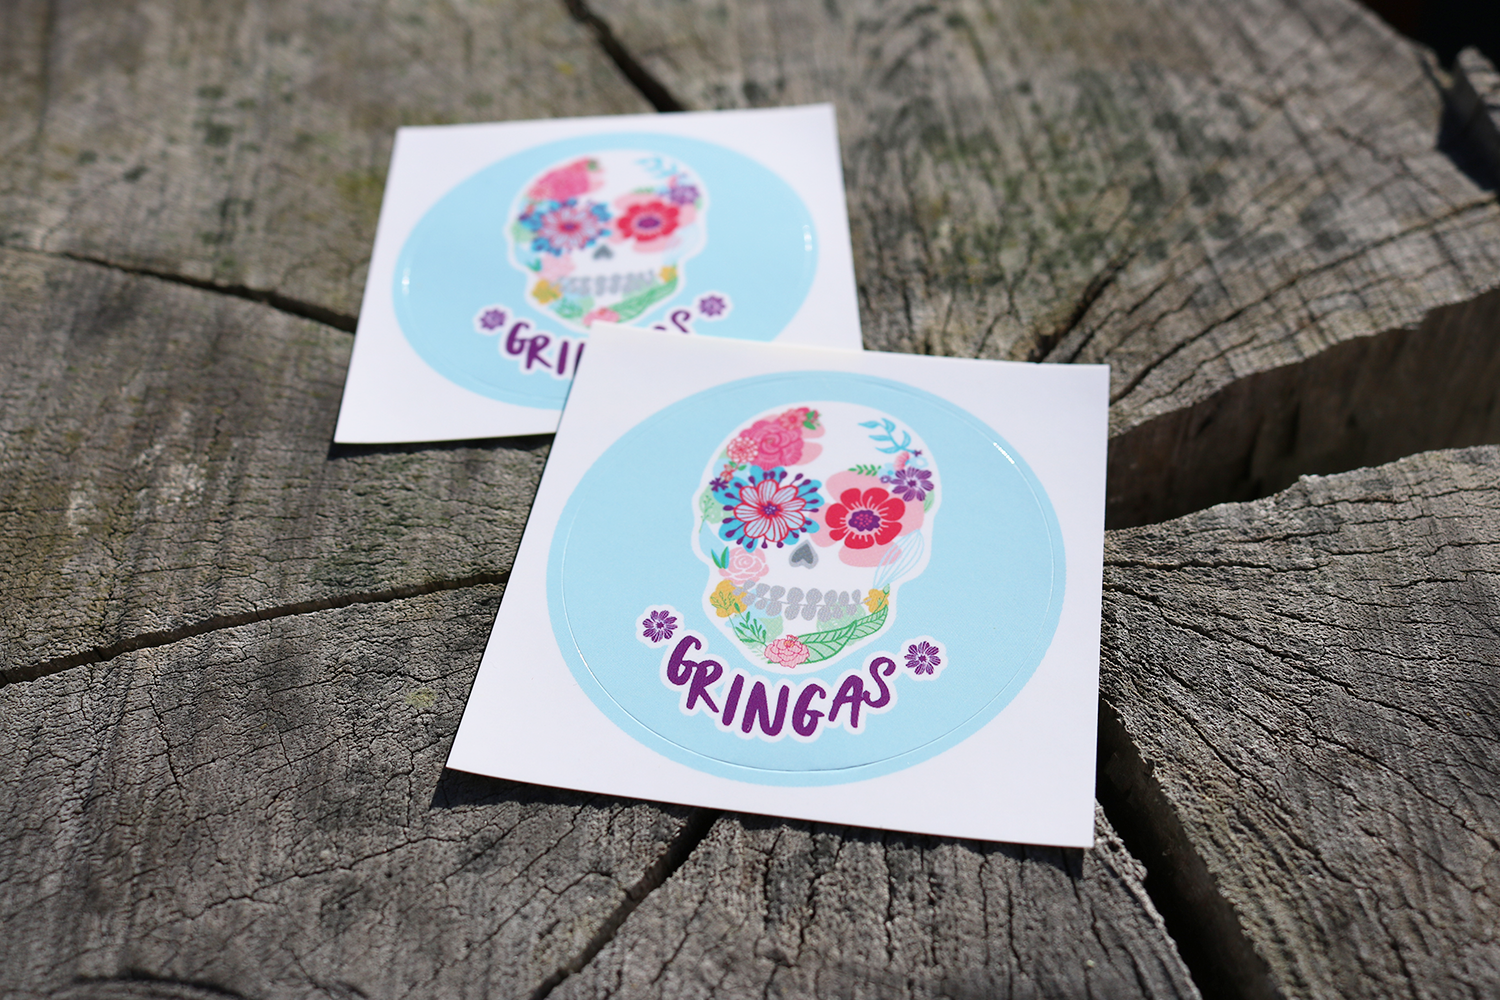 Gringas Stickers